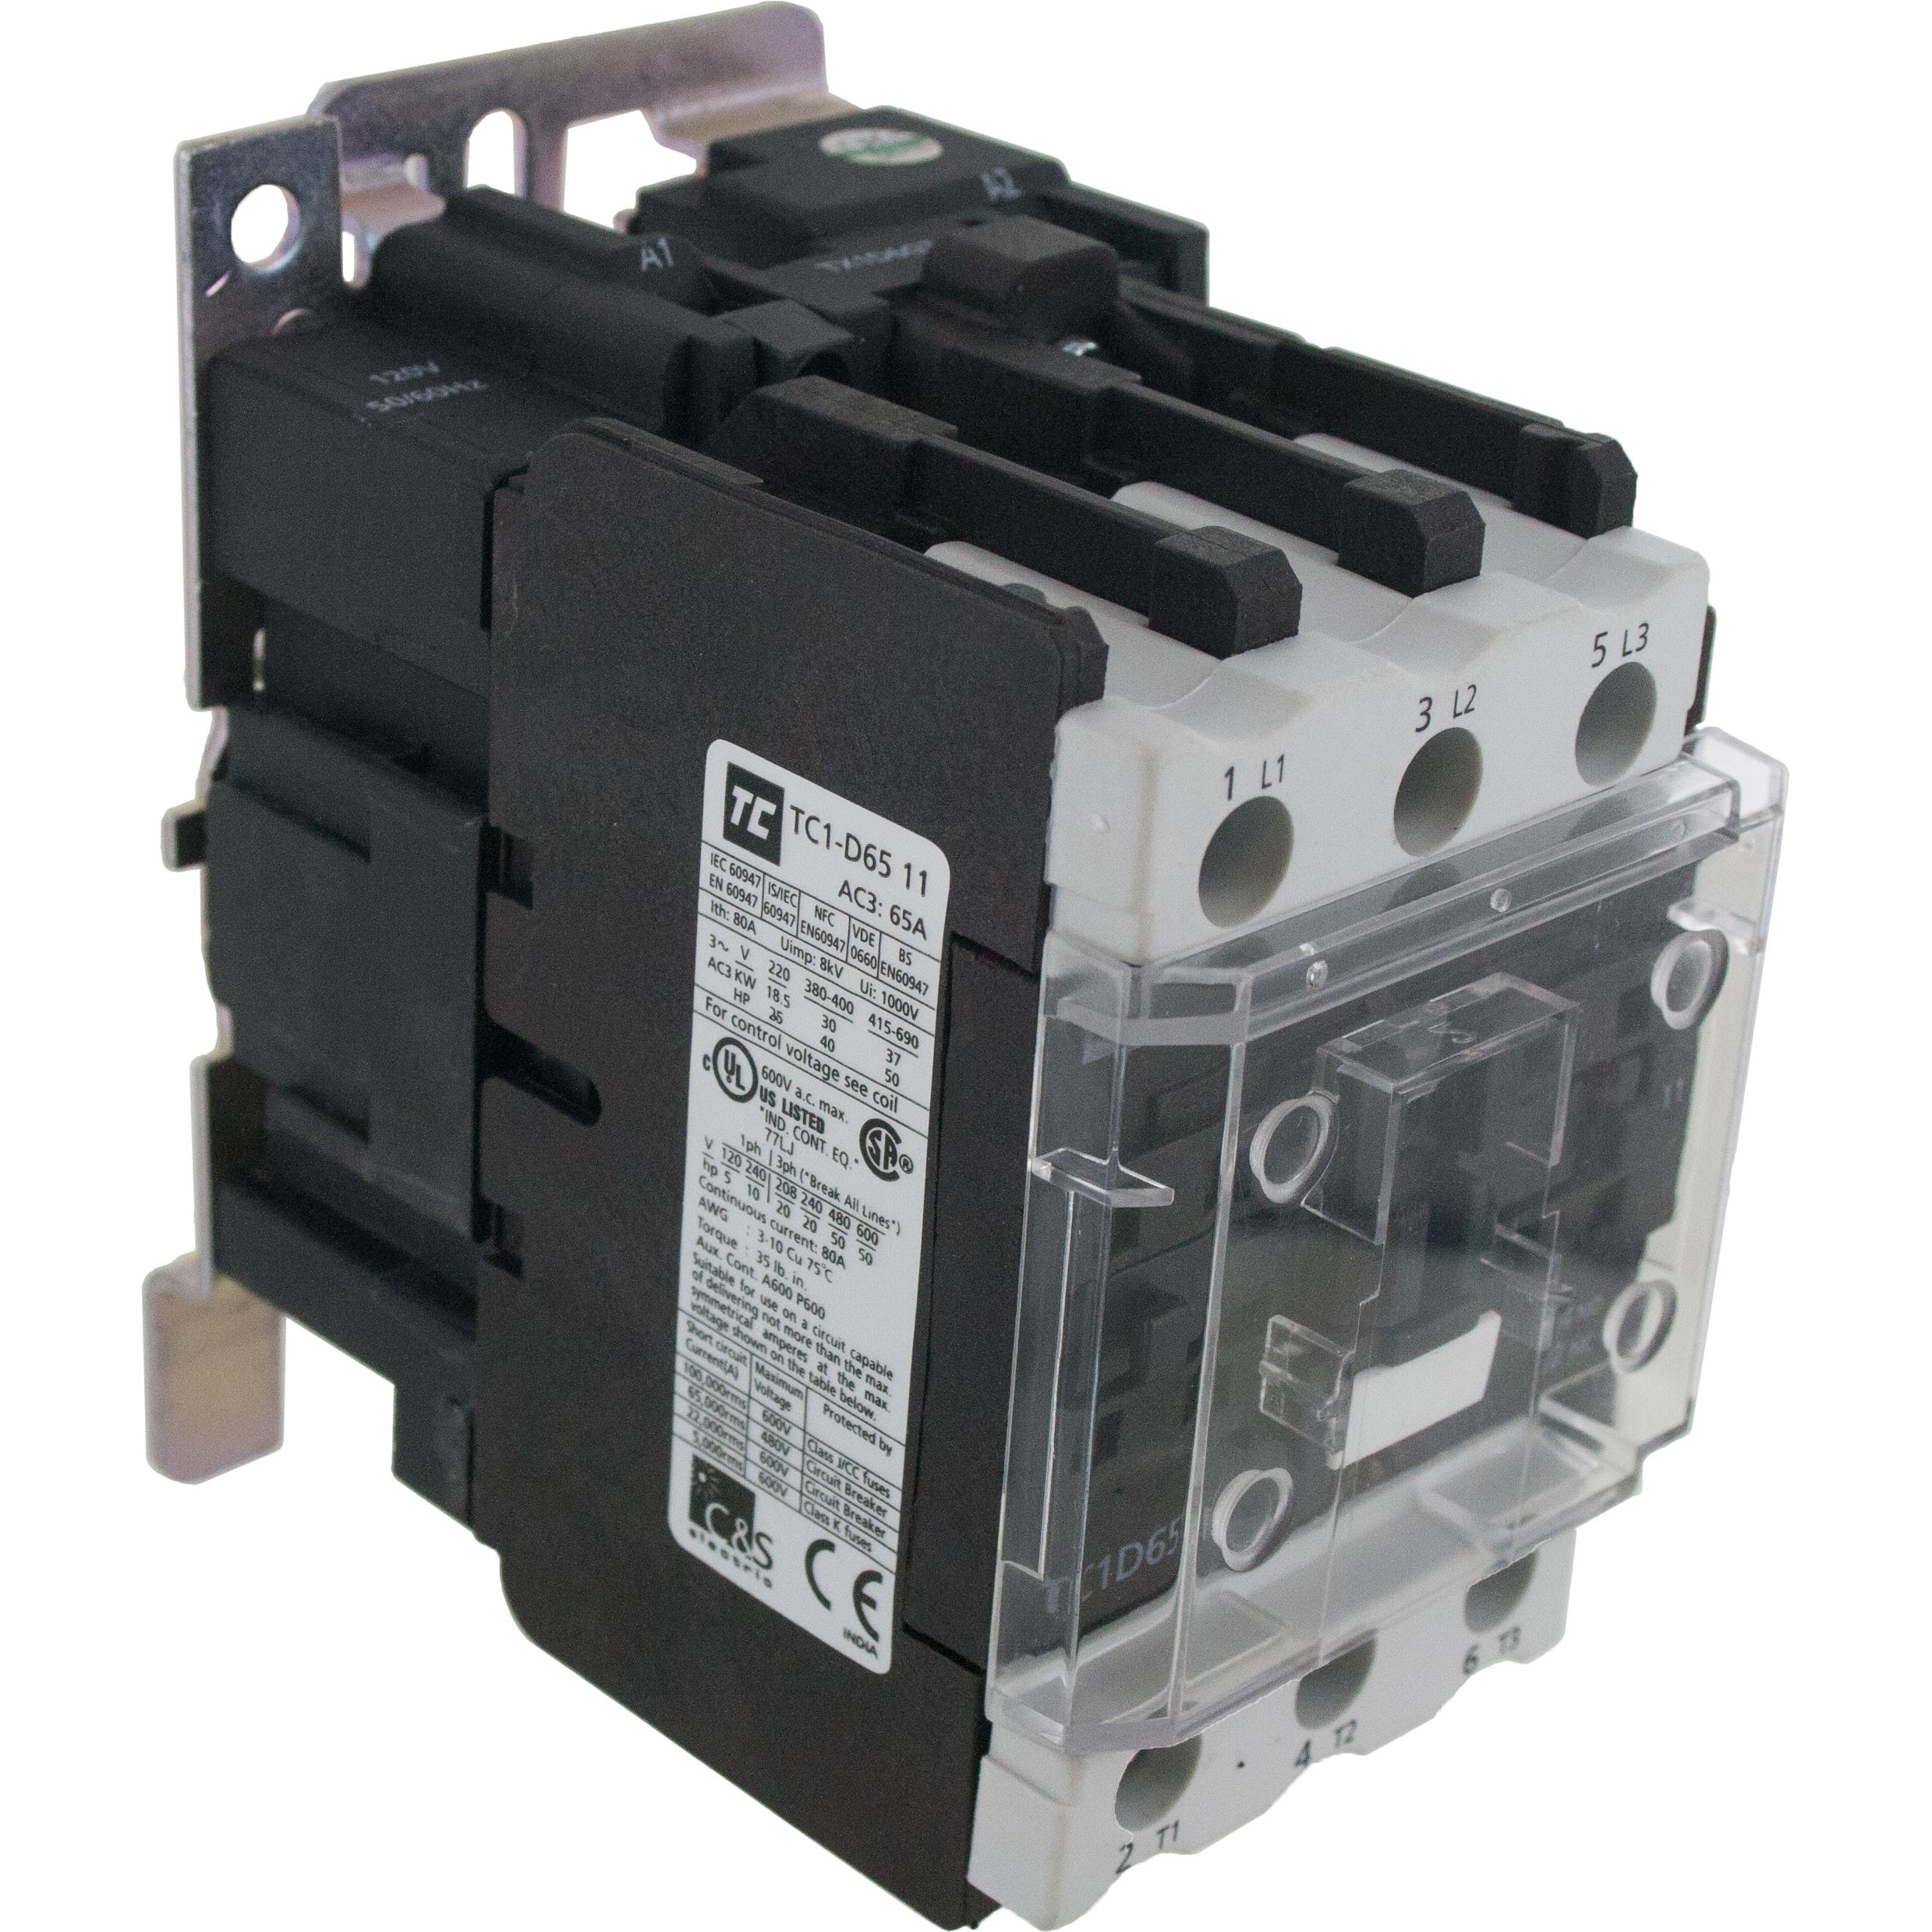 3 Pole Contactor 65 Amp 1 N/O - 1 N/C 480 Volt AC Coil Angle